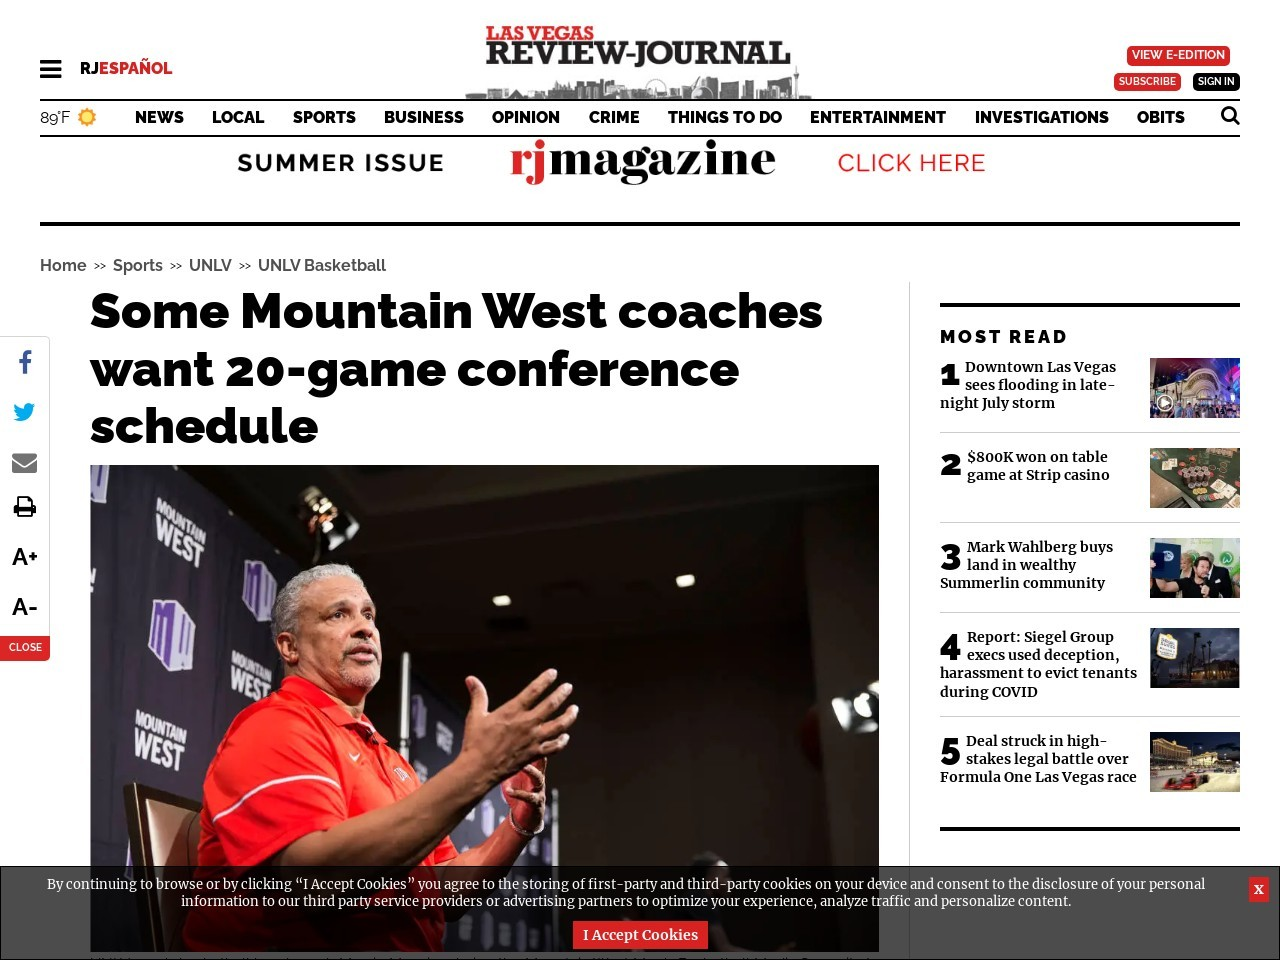 Some Mountain West coaches want 20-game conference schedule